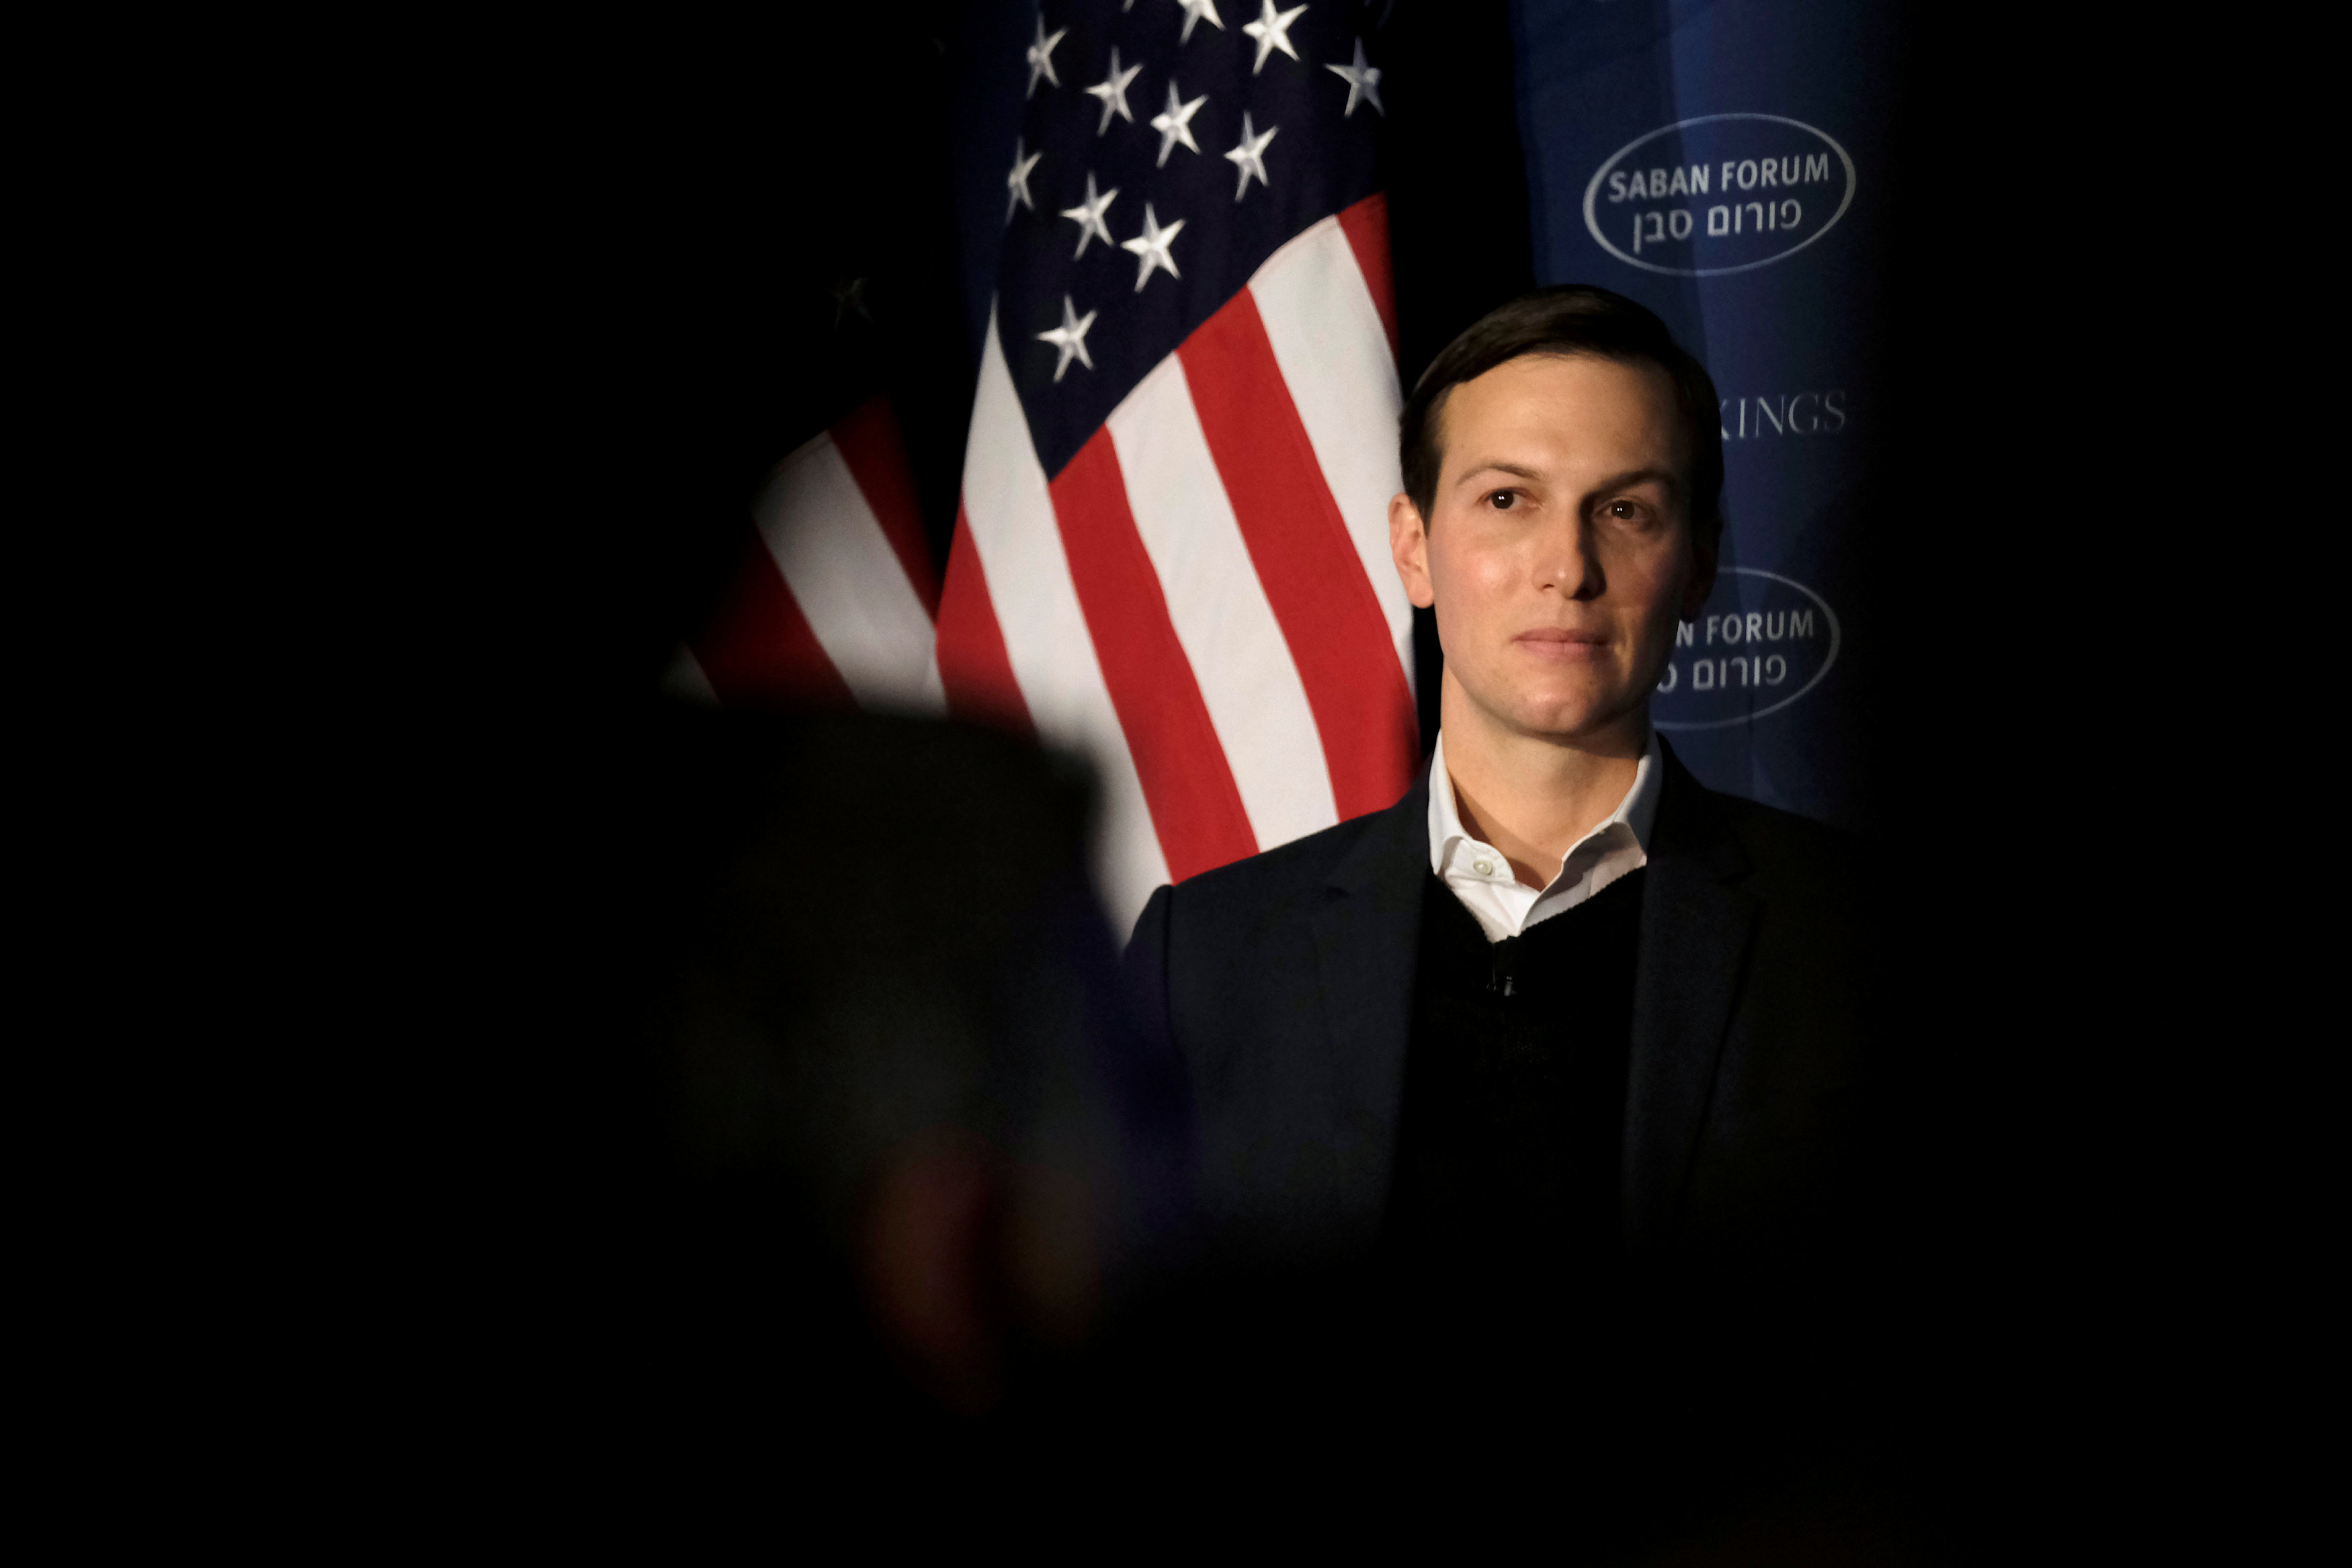 White House senior adviser Jared Kushner delivers remarks on the Trump administration's approach to the Middle East region at the Saban Forum in Washington, U.S., December 3, 2017.